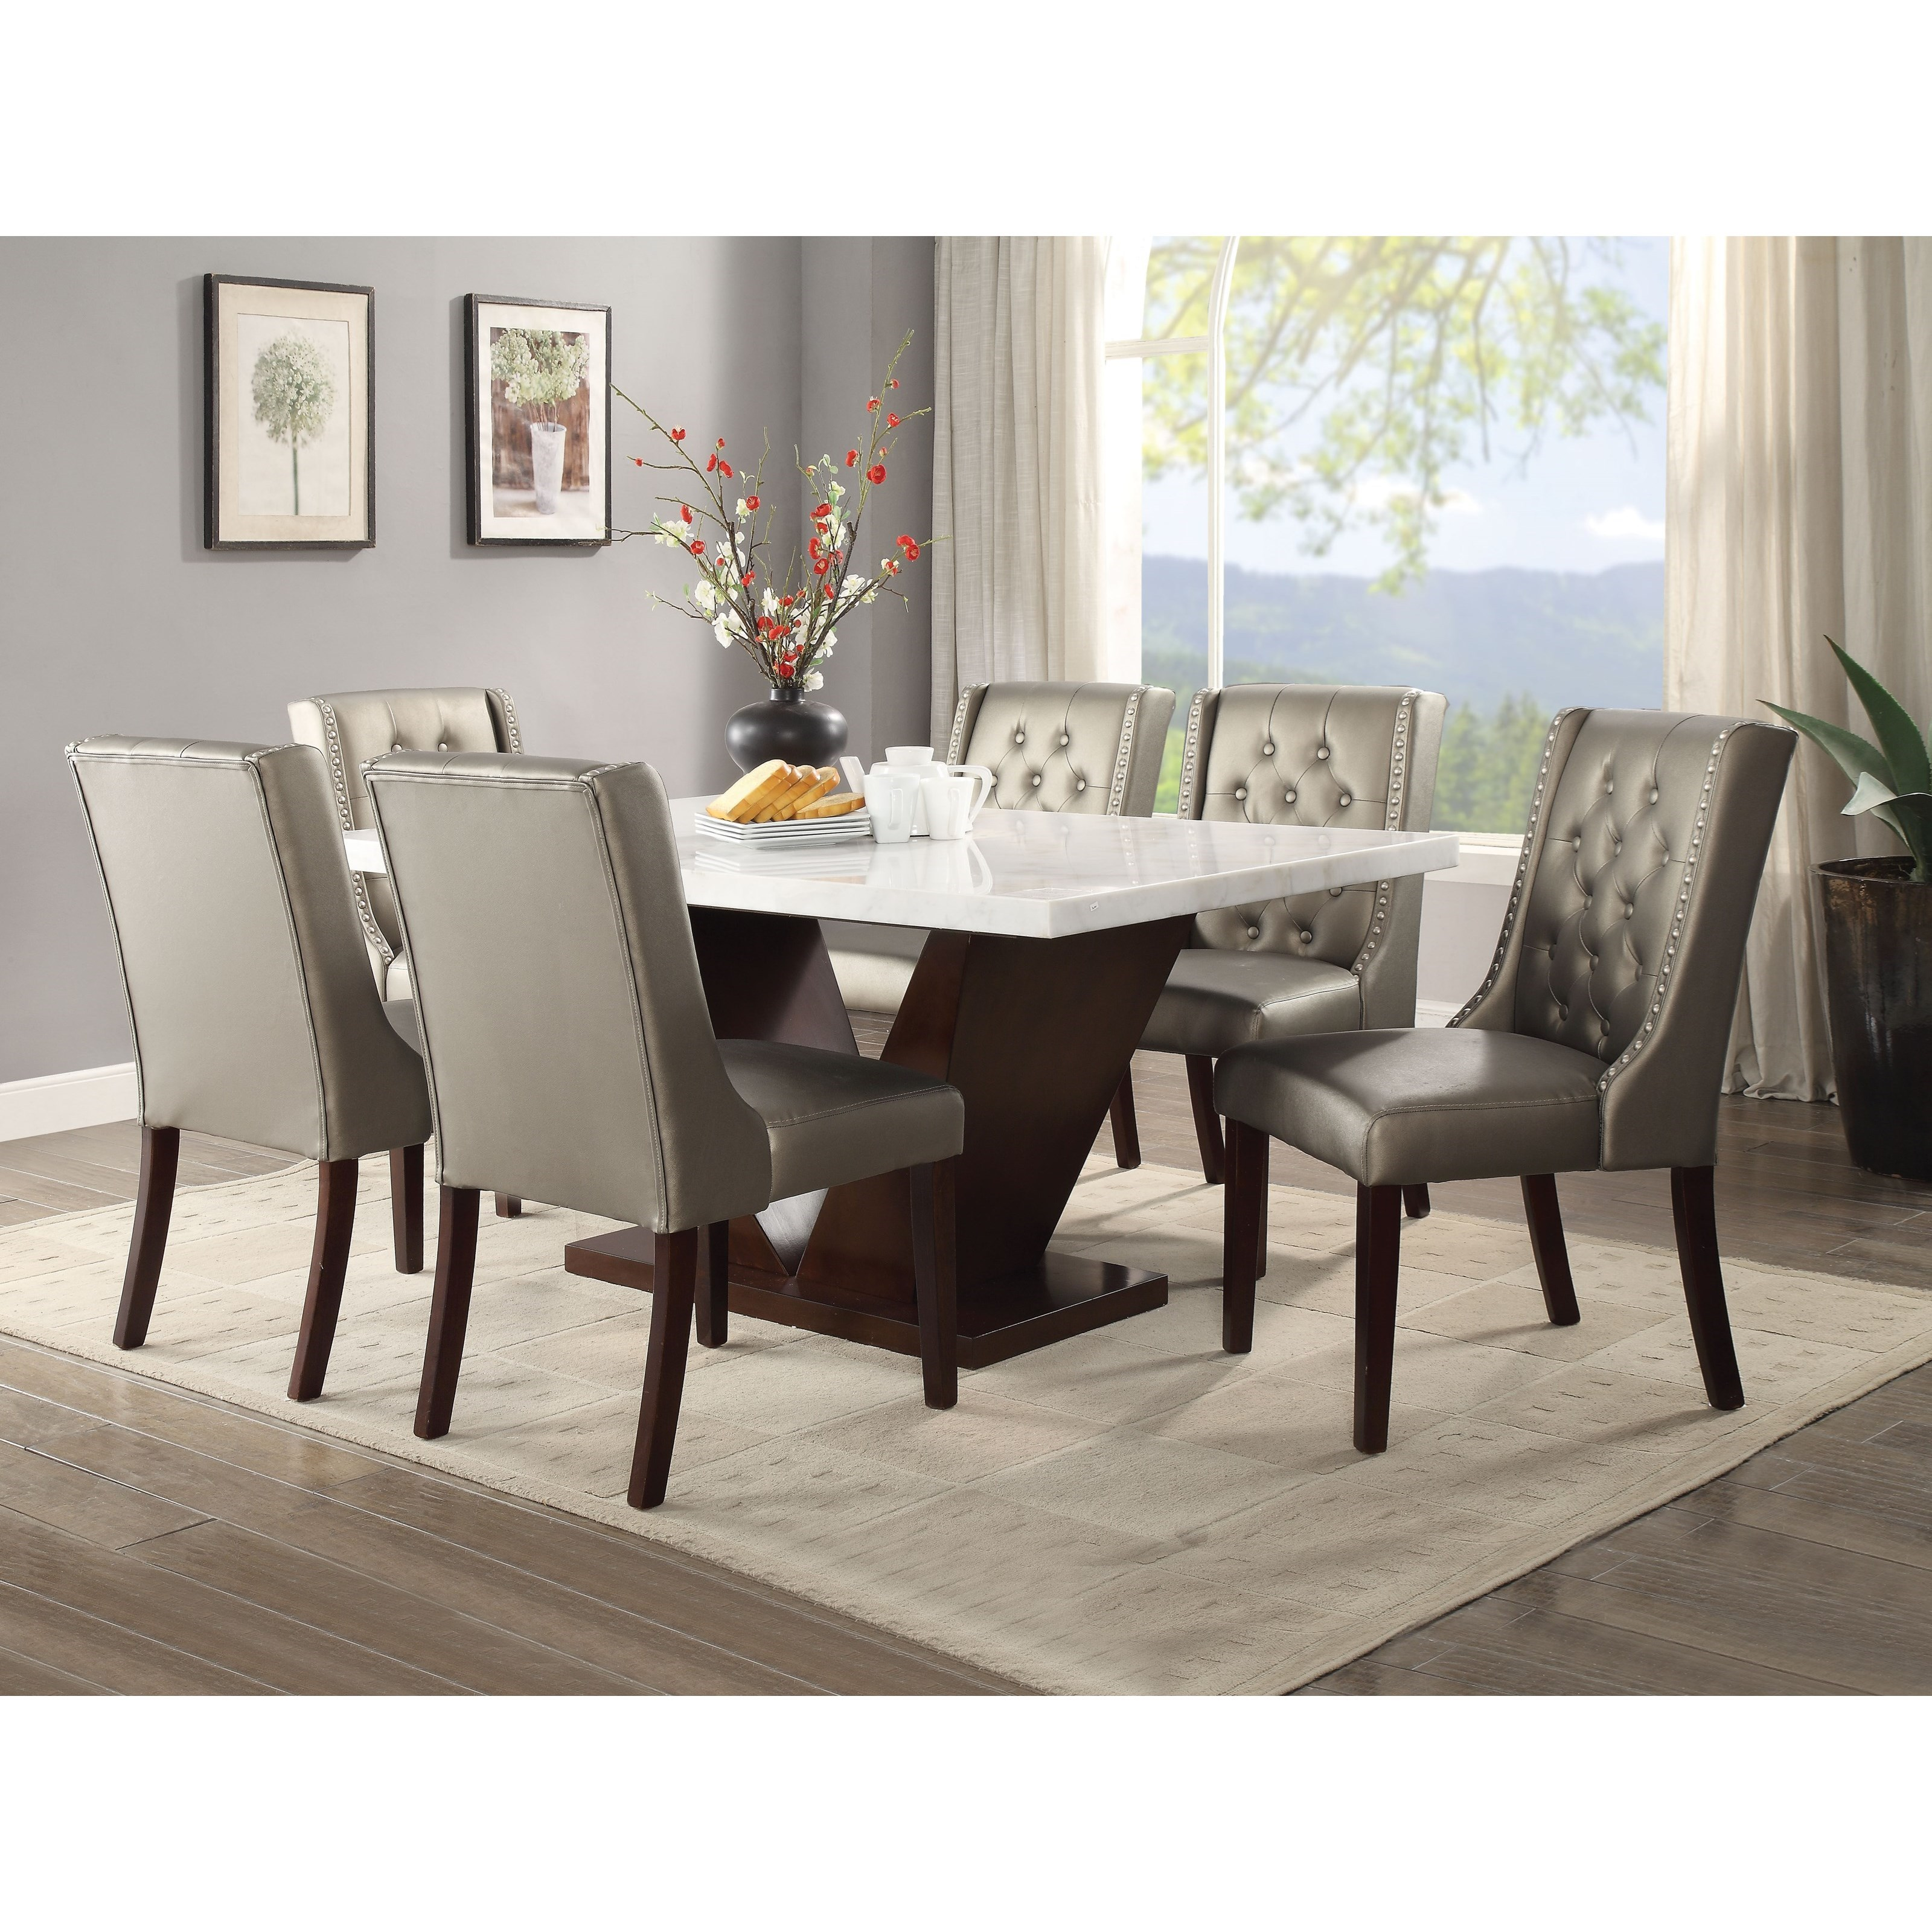 Acme Furniture Forbes 7 Piece Marble Top Dining Table Set Rooms For Less Dining 7 Or More Piece Sets